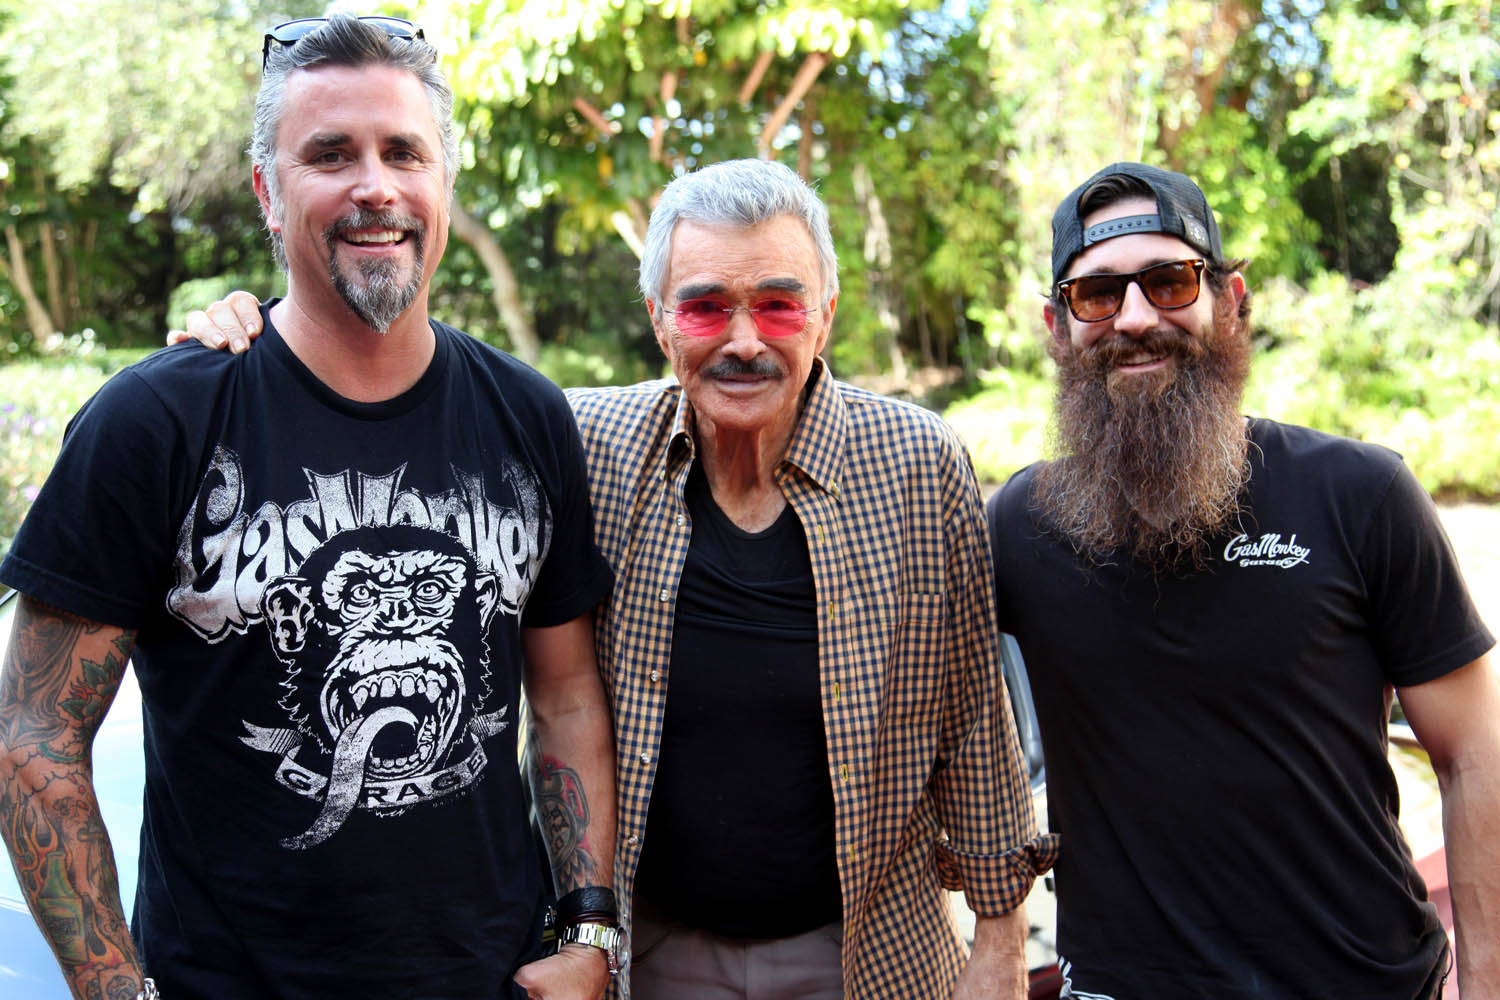 richard rawlings | Rory with Richard - 246.0KB